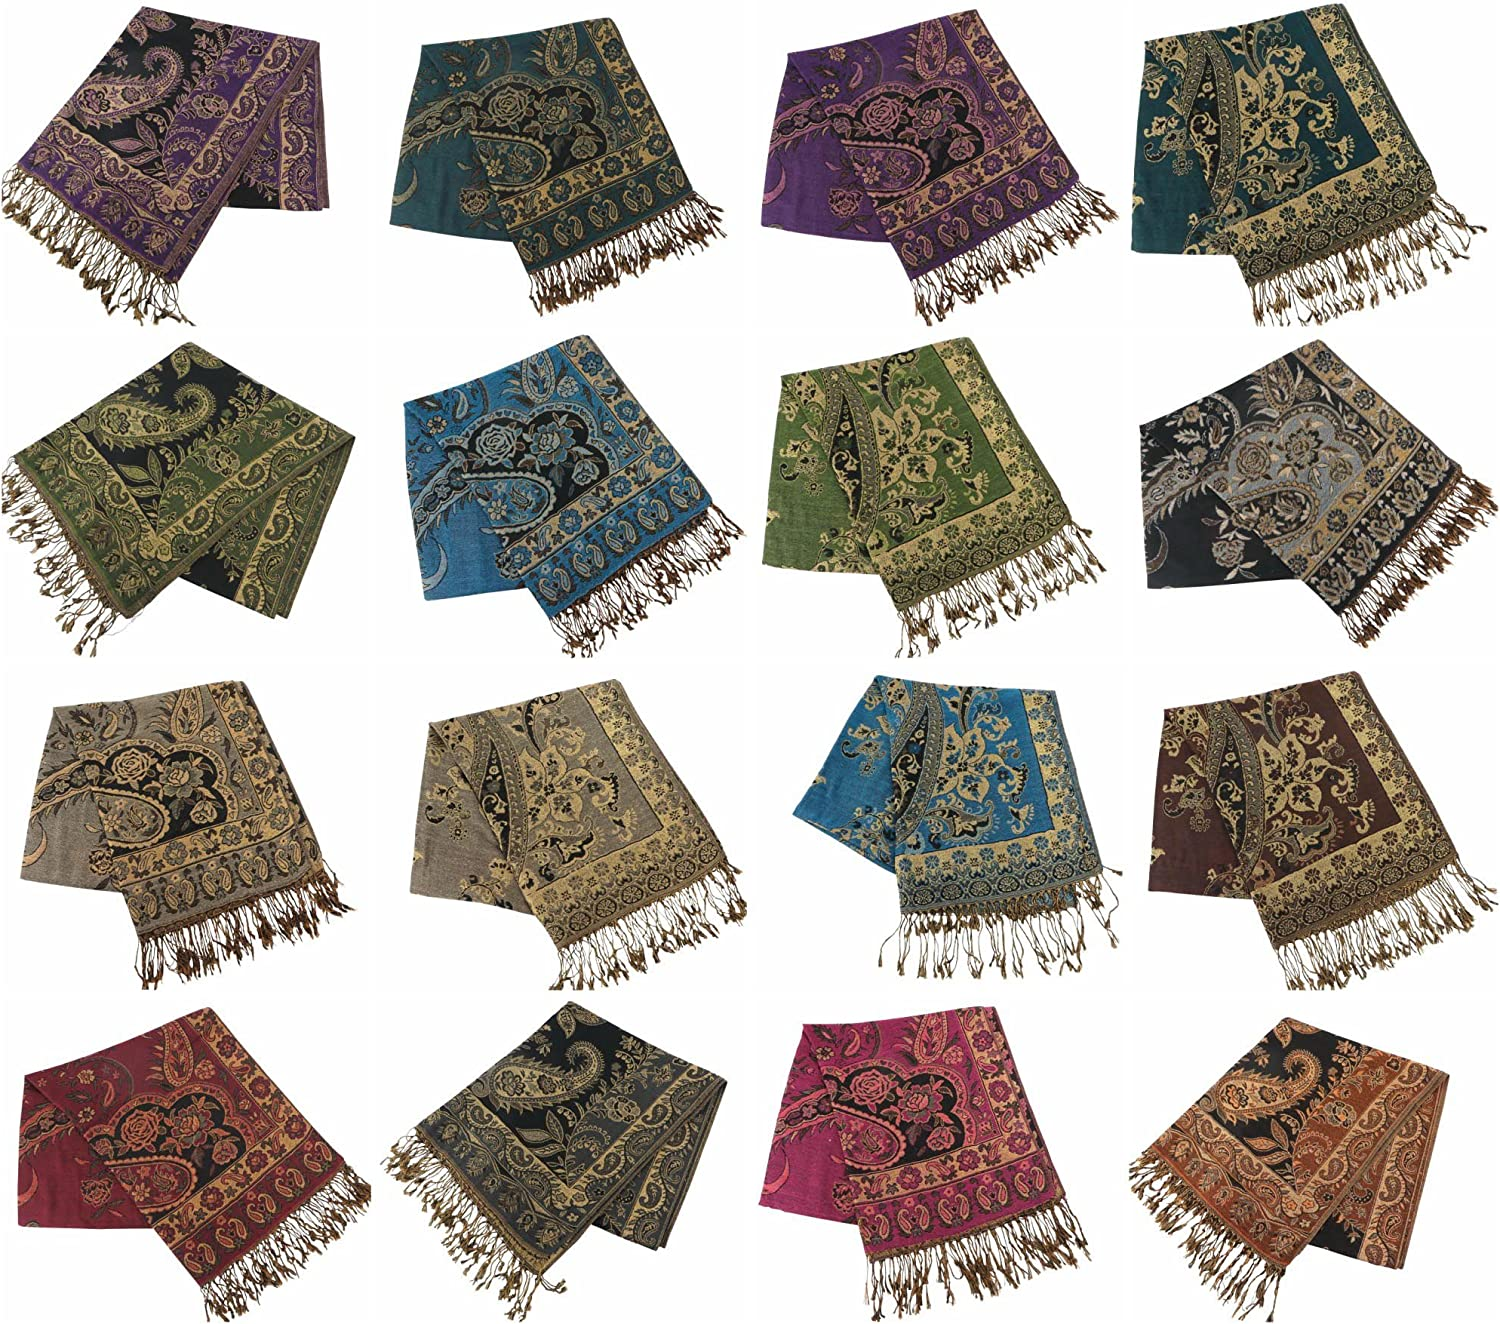 12 scarves floral paisley gold thread embeded pashmina shawl wrap stole Winter dressy Discount Scarf